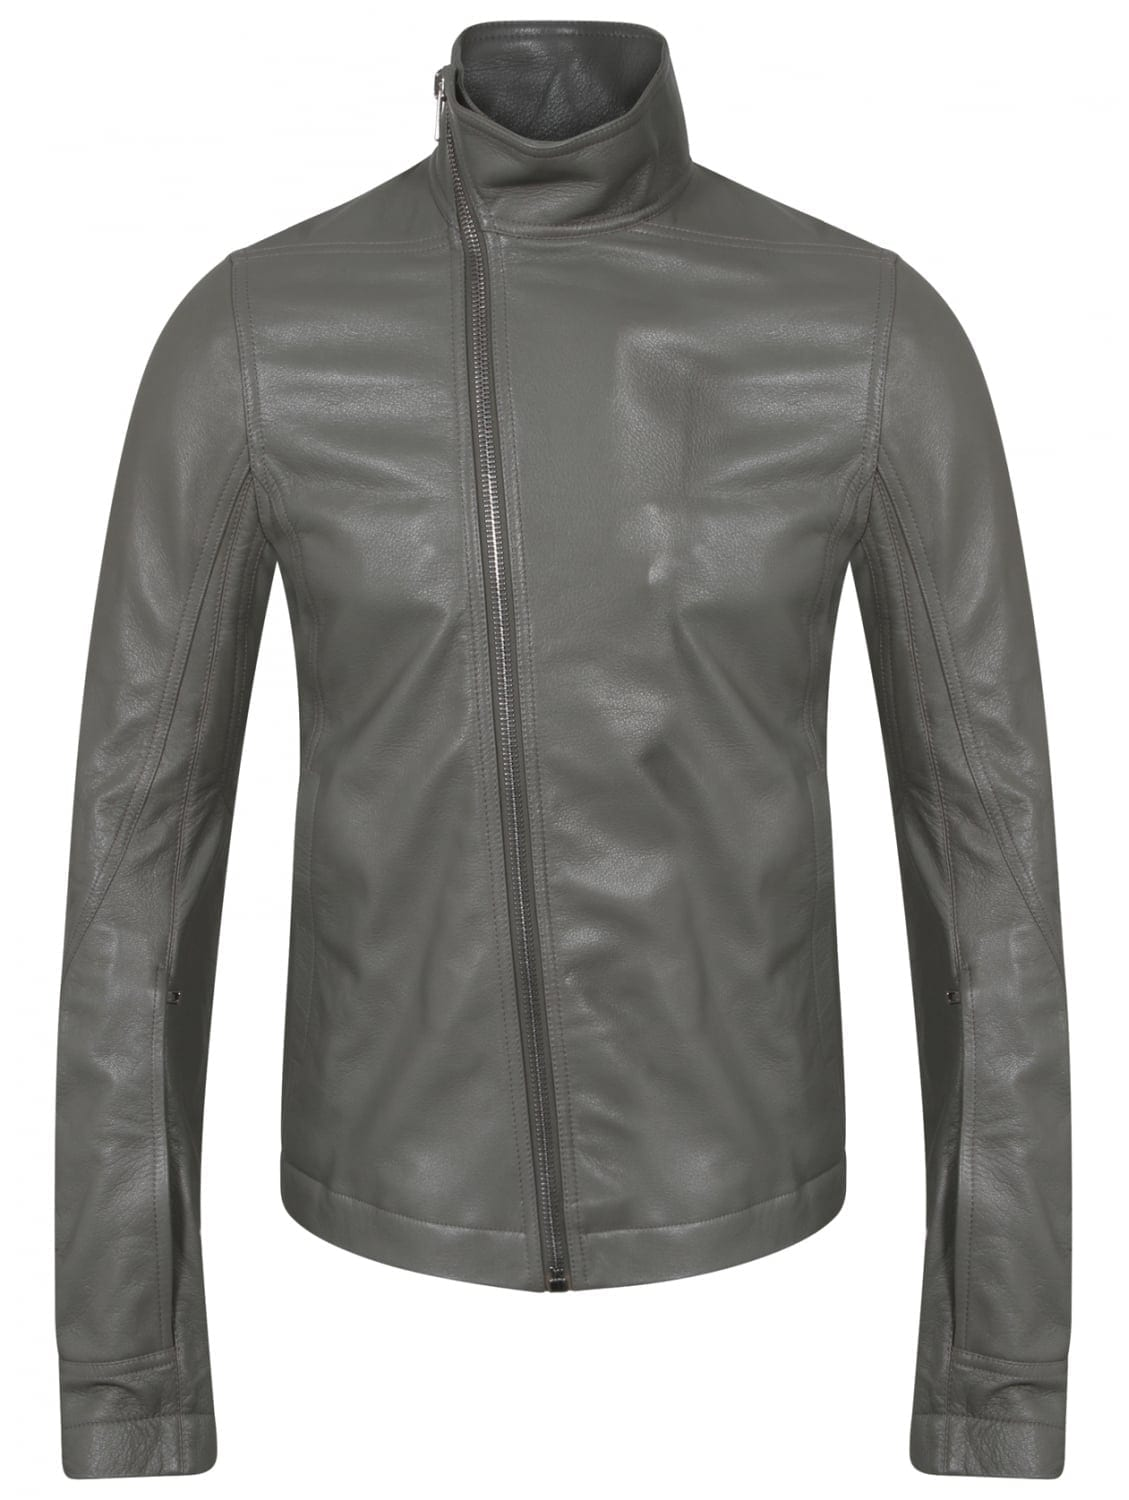 Rick-Owens-Classic-Gray-Jacket Top Brands for Leather Jackets-15 Most Popular Brands 2018 for Men